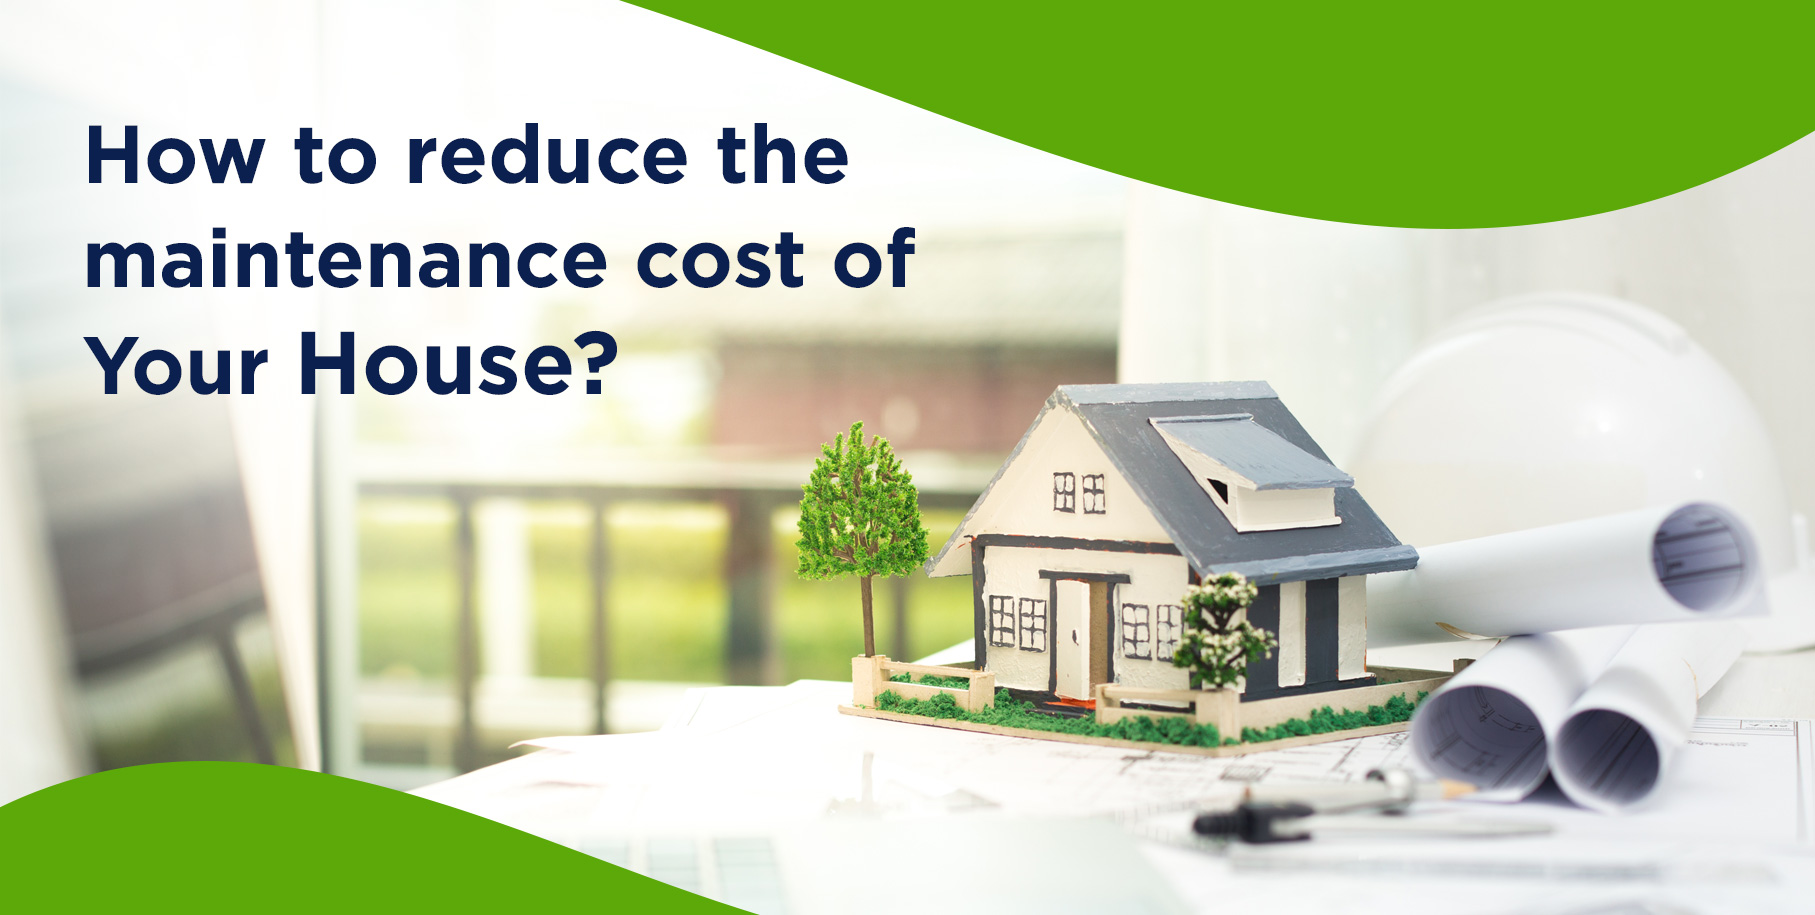 How to Reduce The Maintenance Cost of your House?